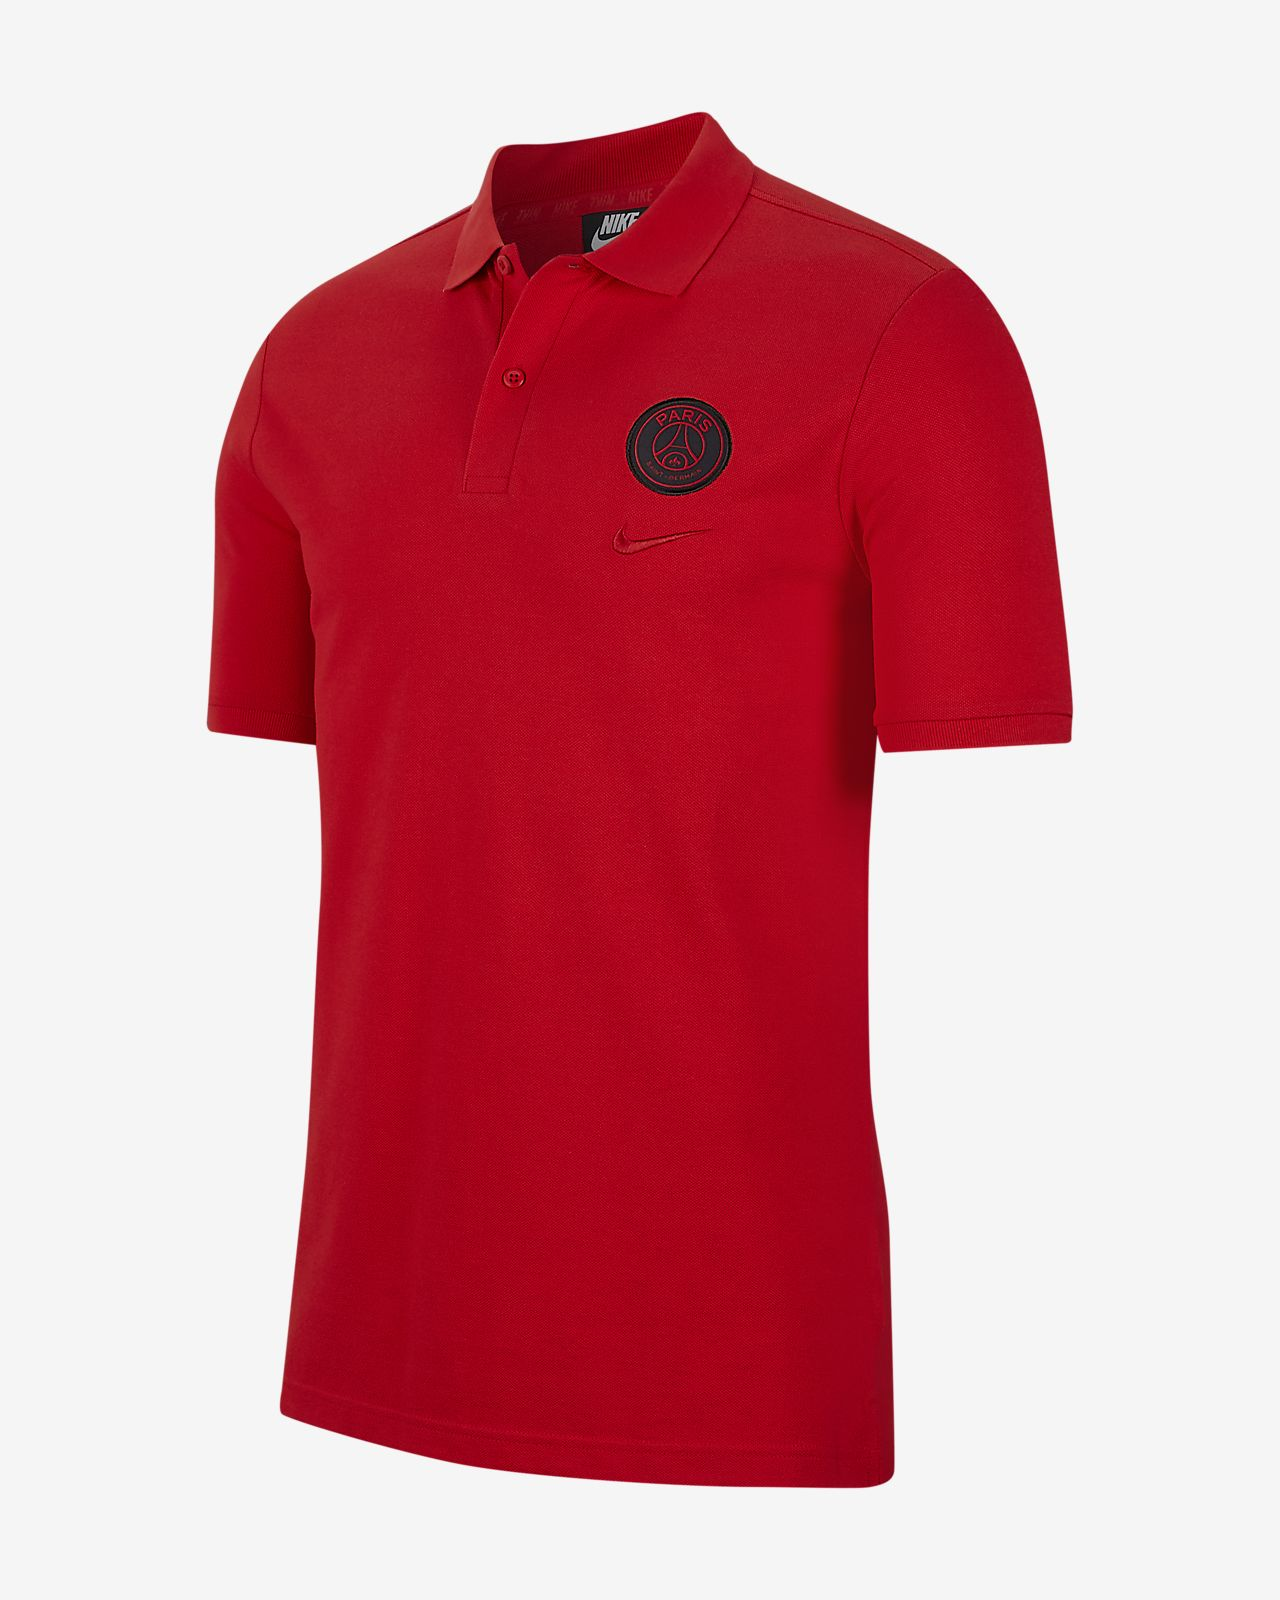 Paris Saint-Germain Herren-Polo